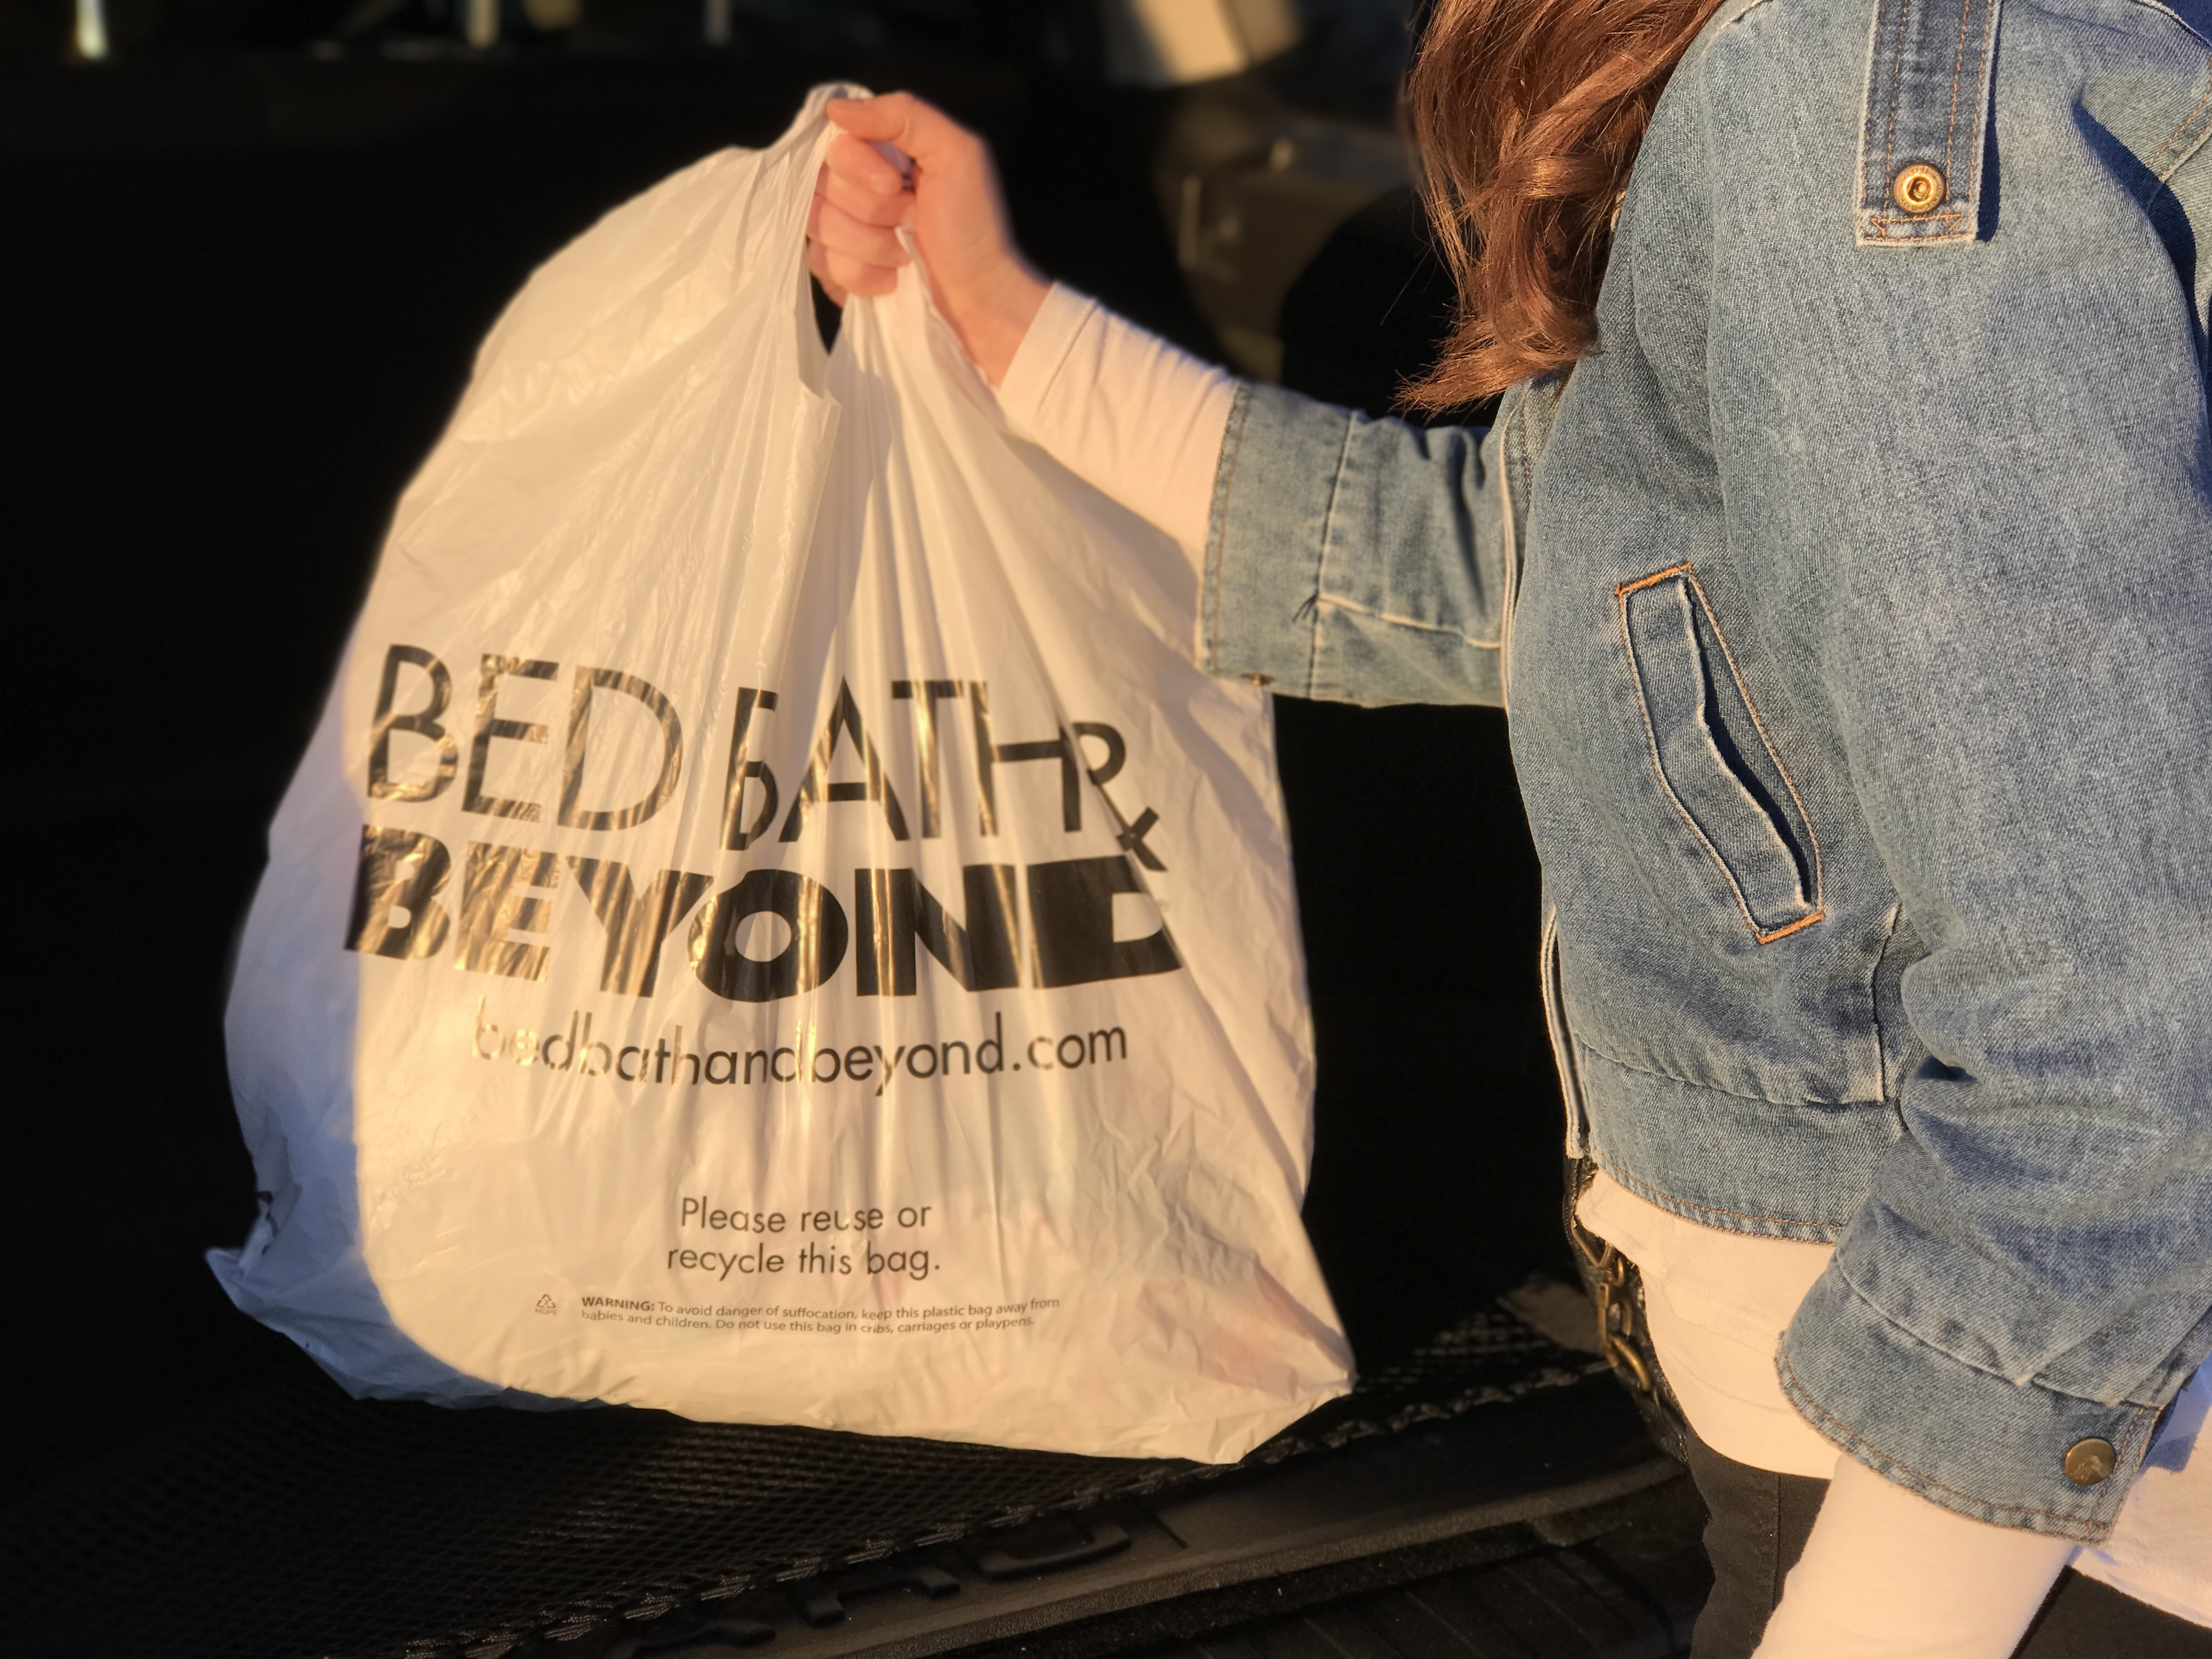 8c0fe431f 26 Golden Rules You Must Follow to Save at Bed Bath & Beyond - The Krazy  Coupon Lady